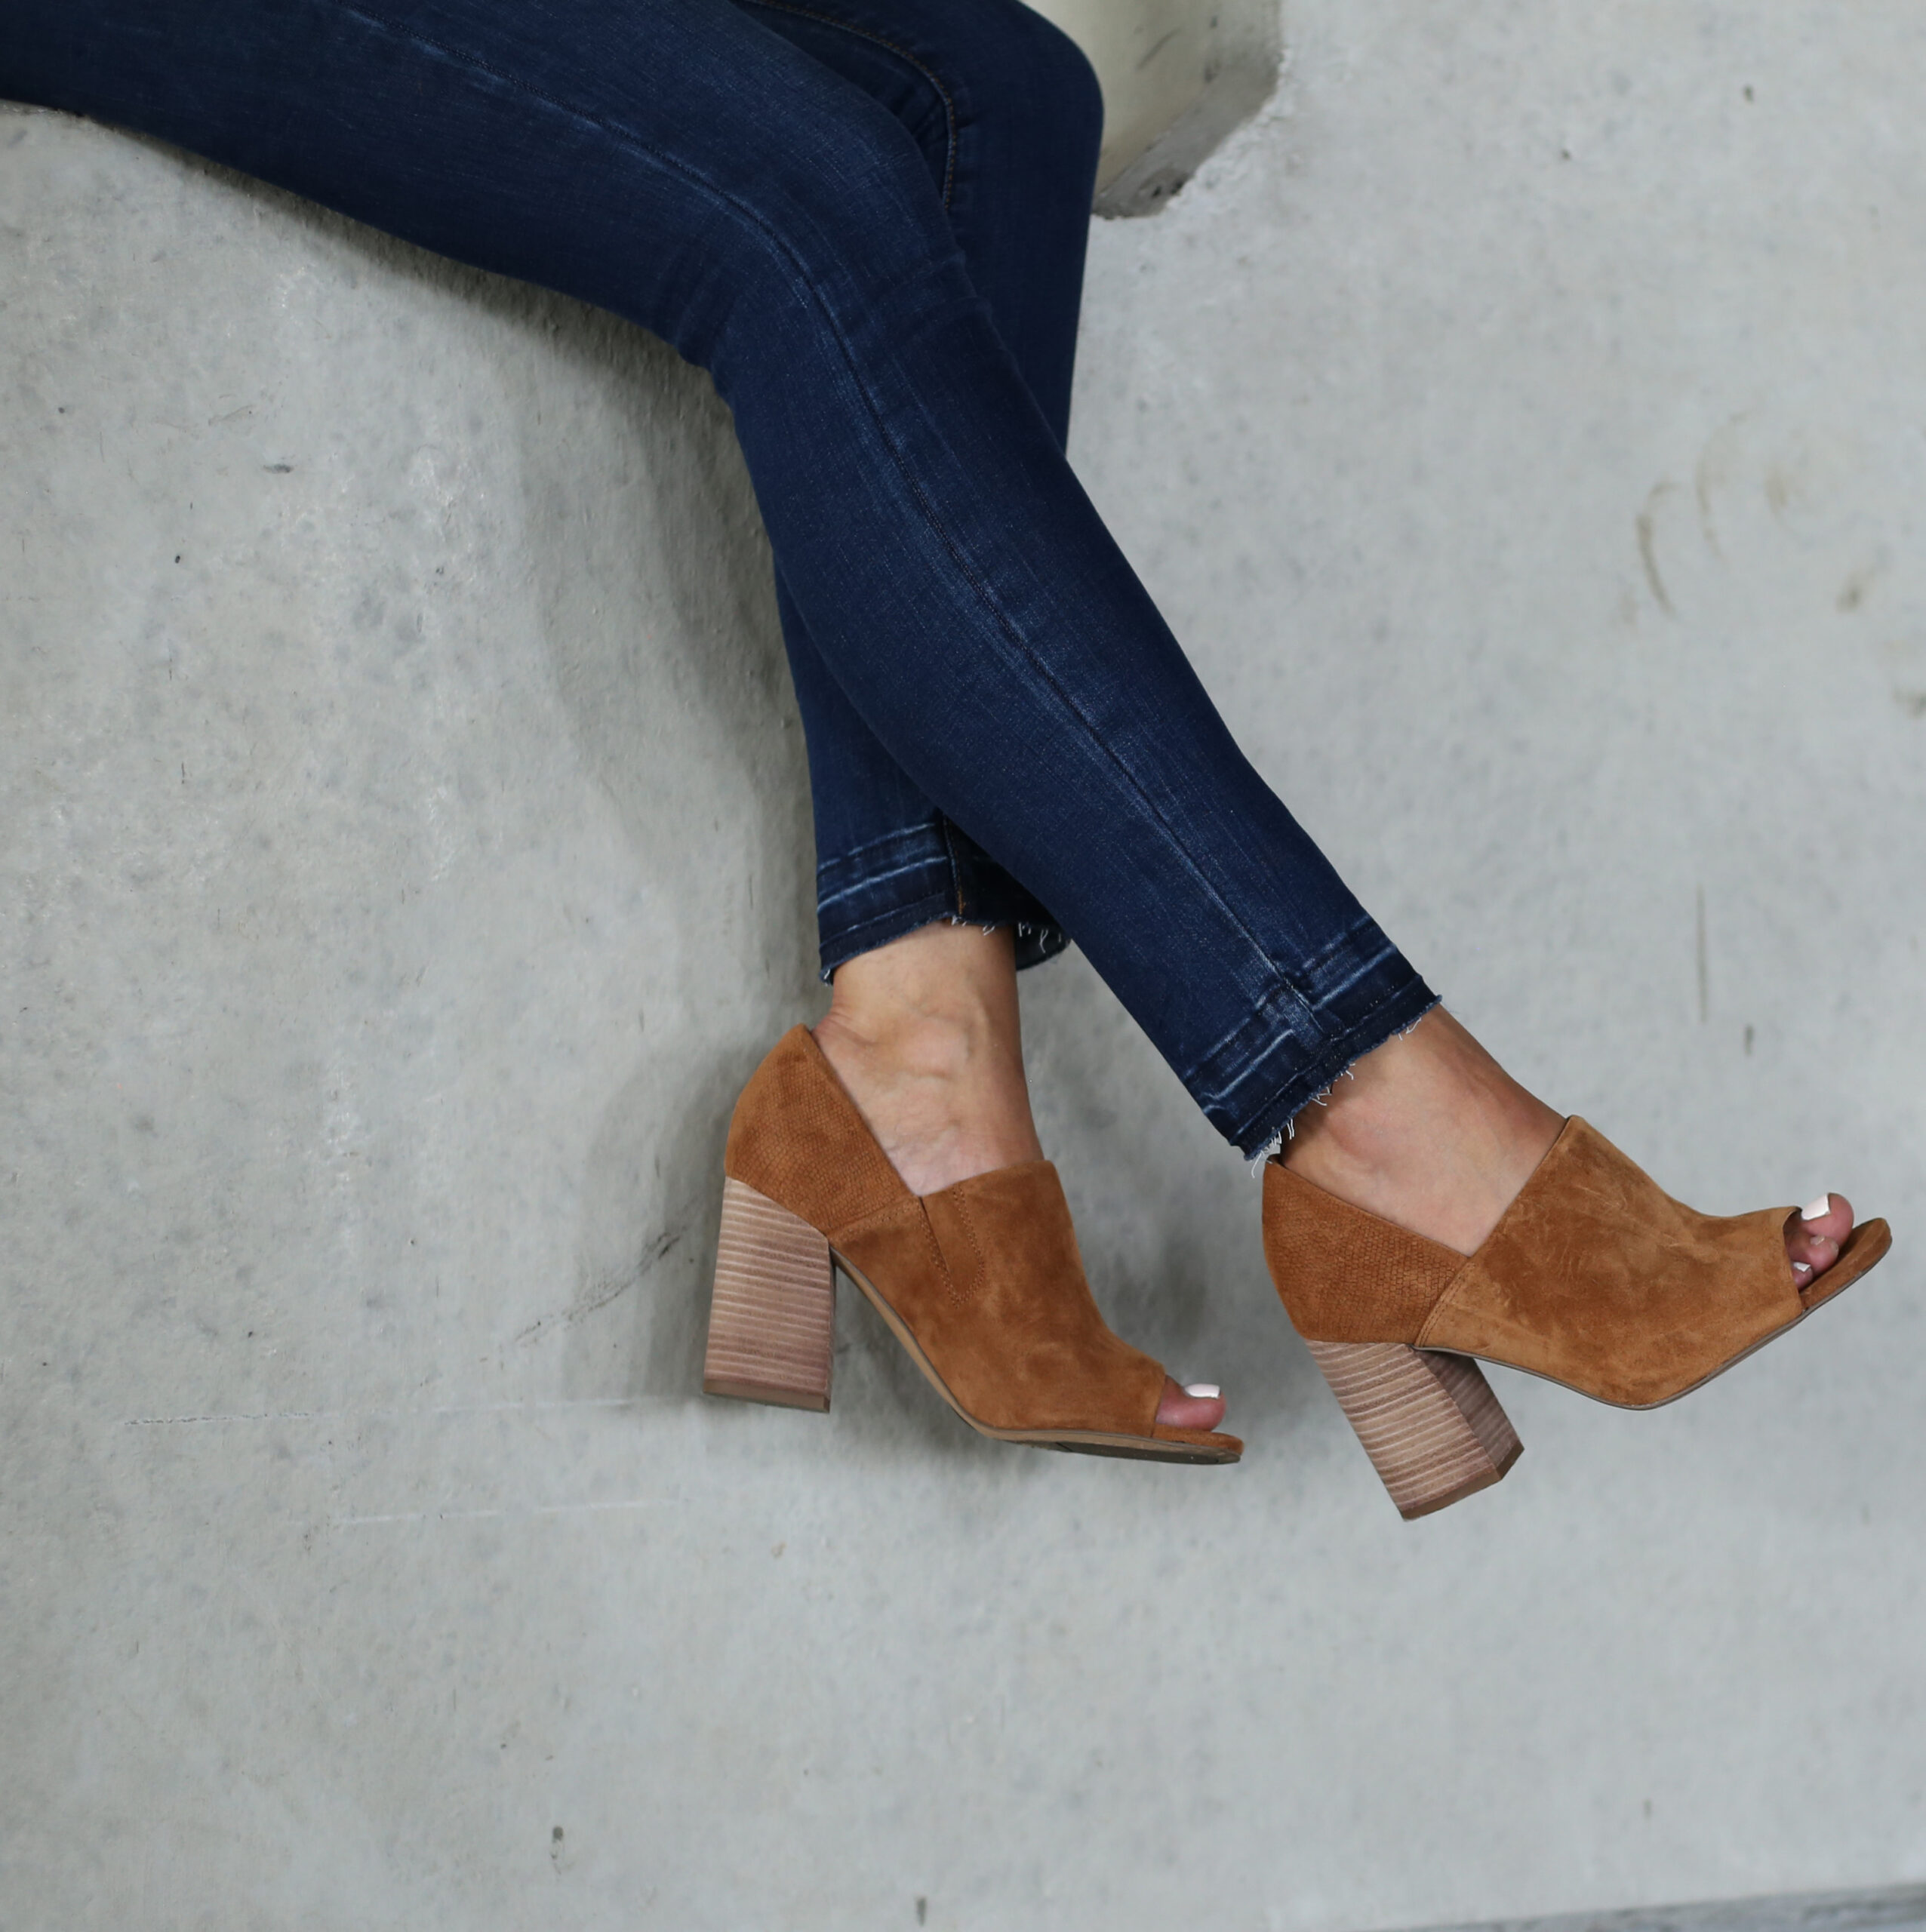 Anna Monteiro of Blushing Rose Style wearing Sarto by Franco Sarto block heel sandals from the Nordstrom Anniversary Sale 2017